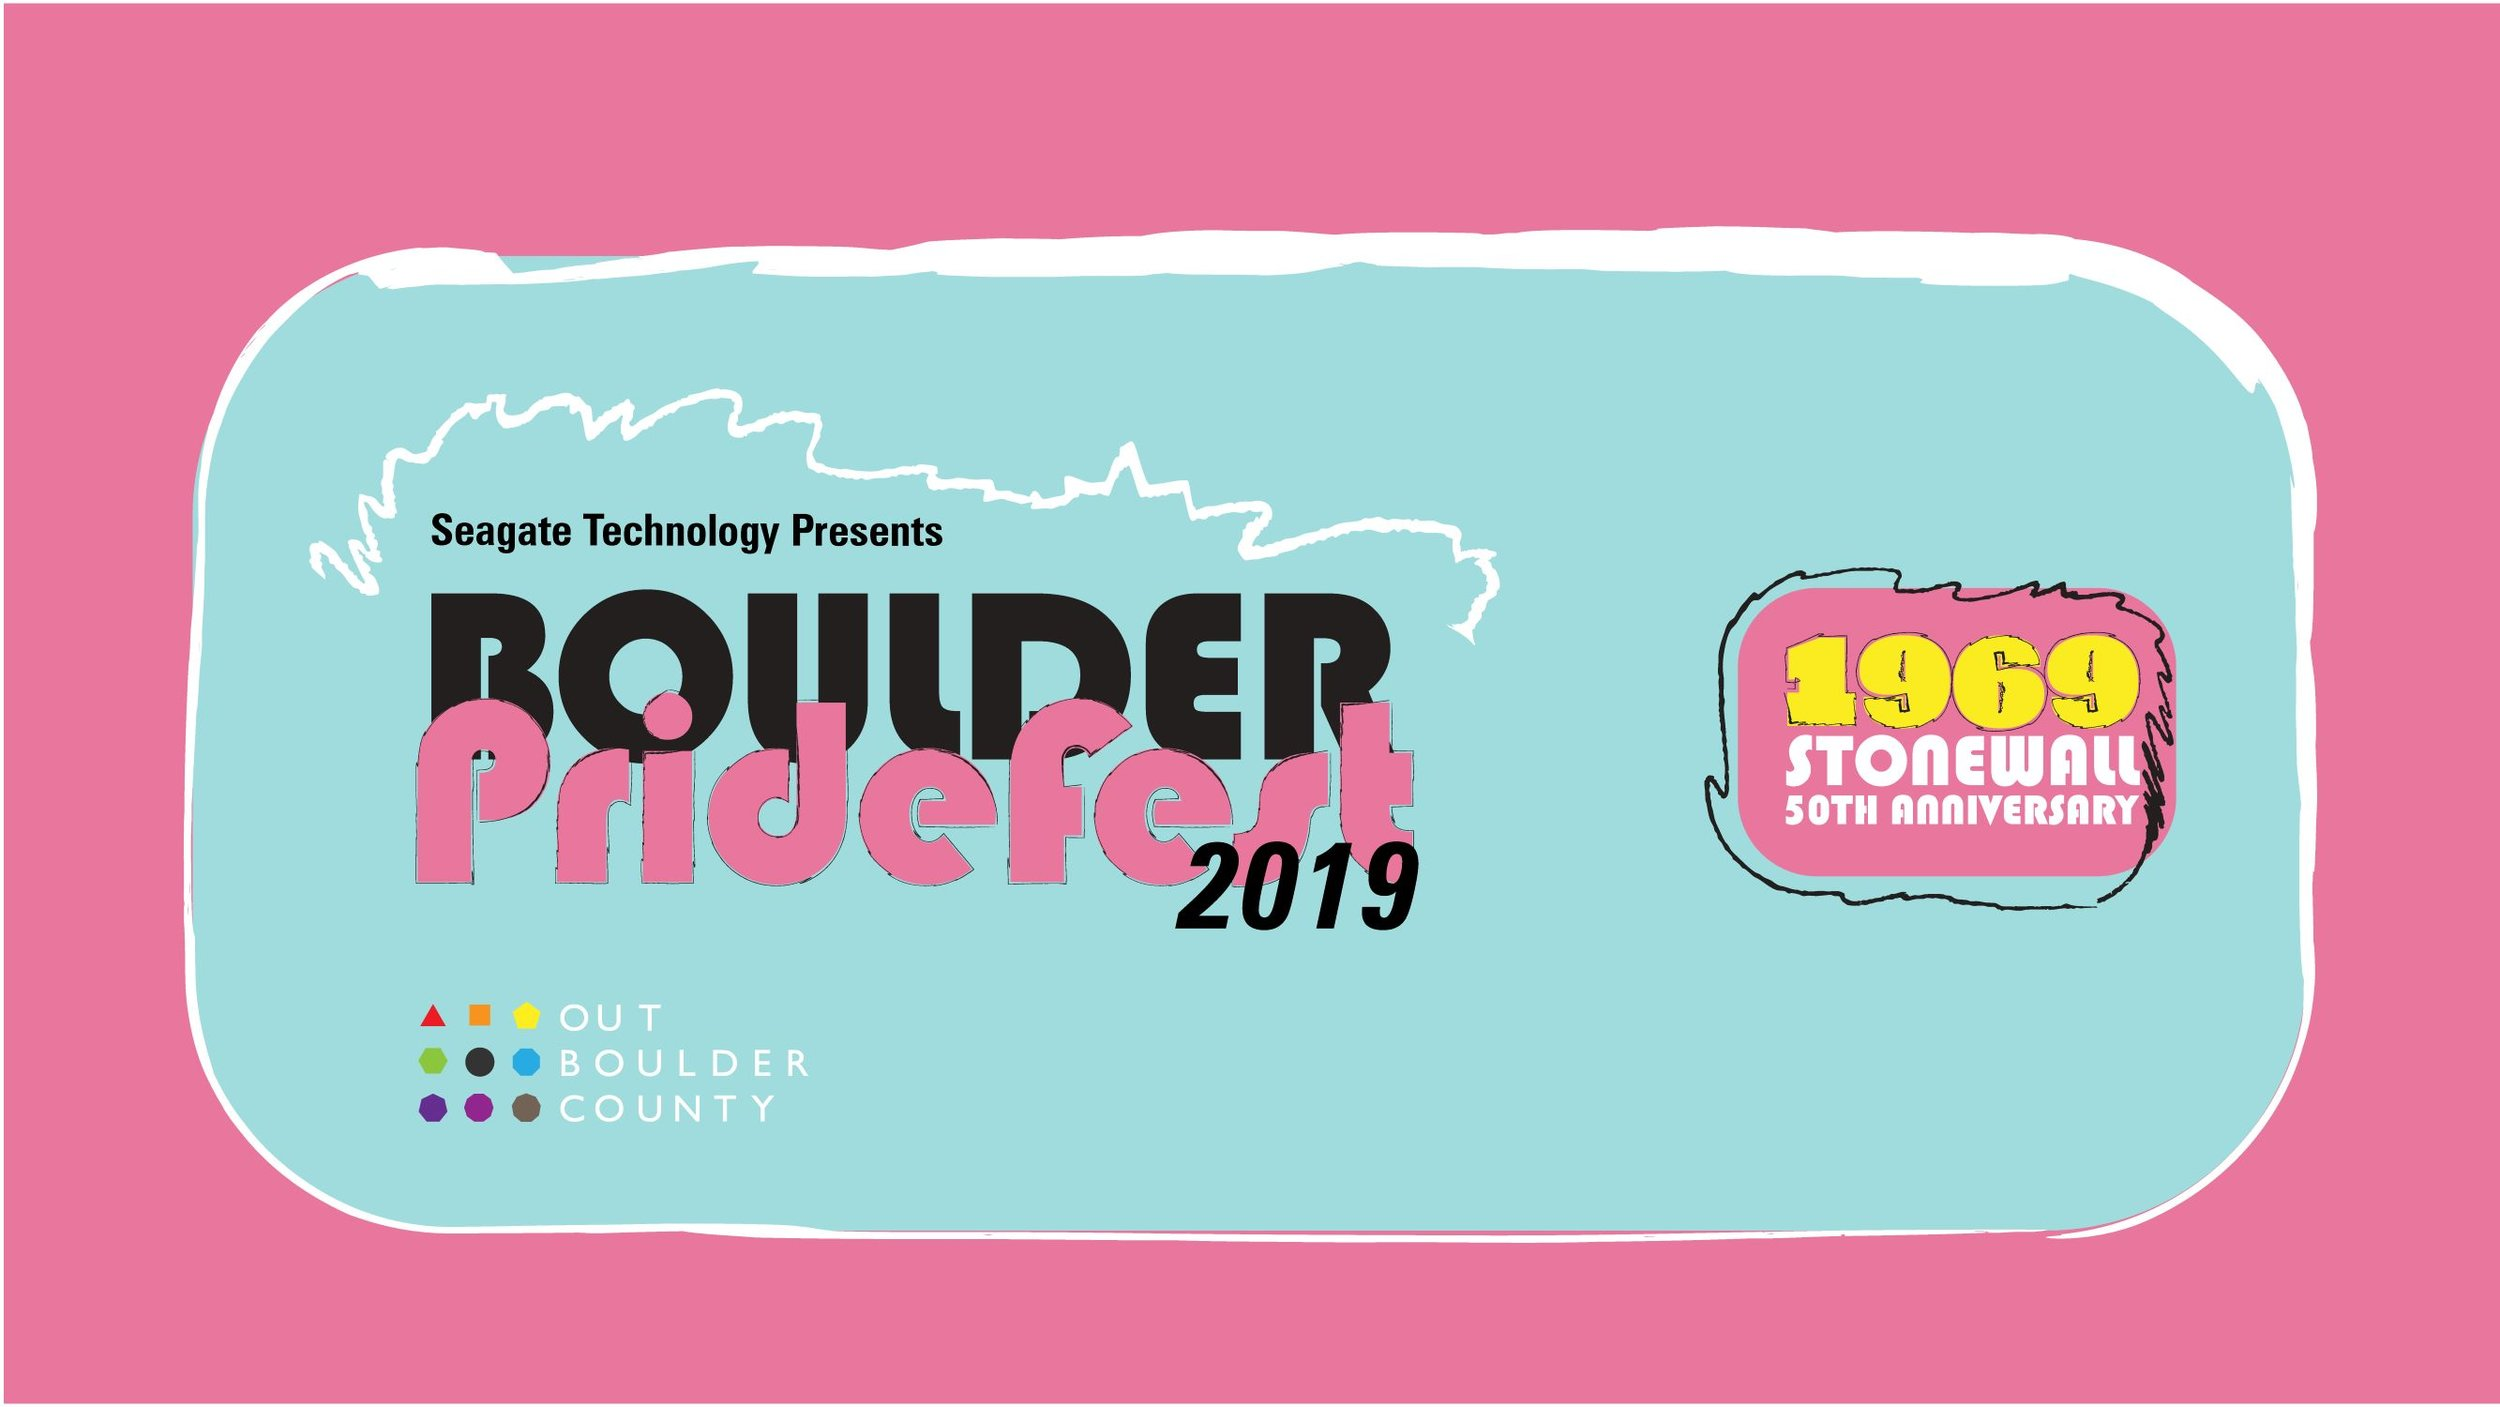 Boulder Pridefest 2019  Sunday, September 8th, 11:30 am-6:30 pm Central Park, Boulder  Click here to see this event on our website.   Click here to see this event on Facebook.